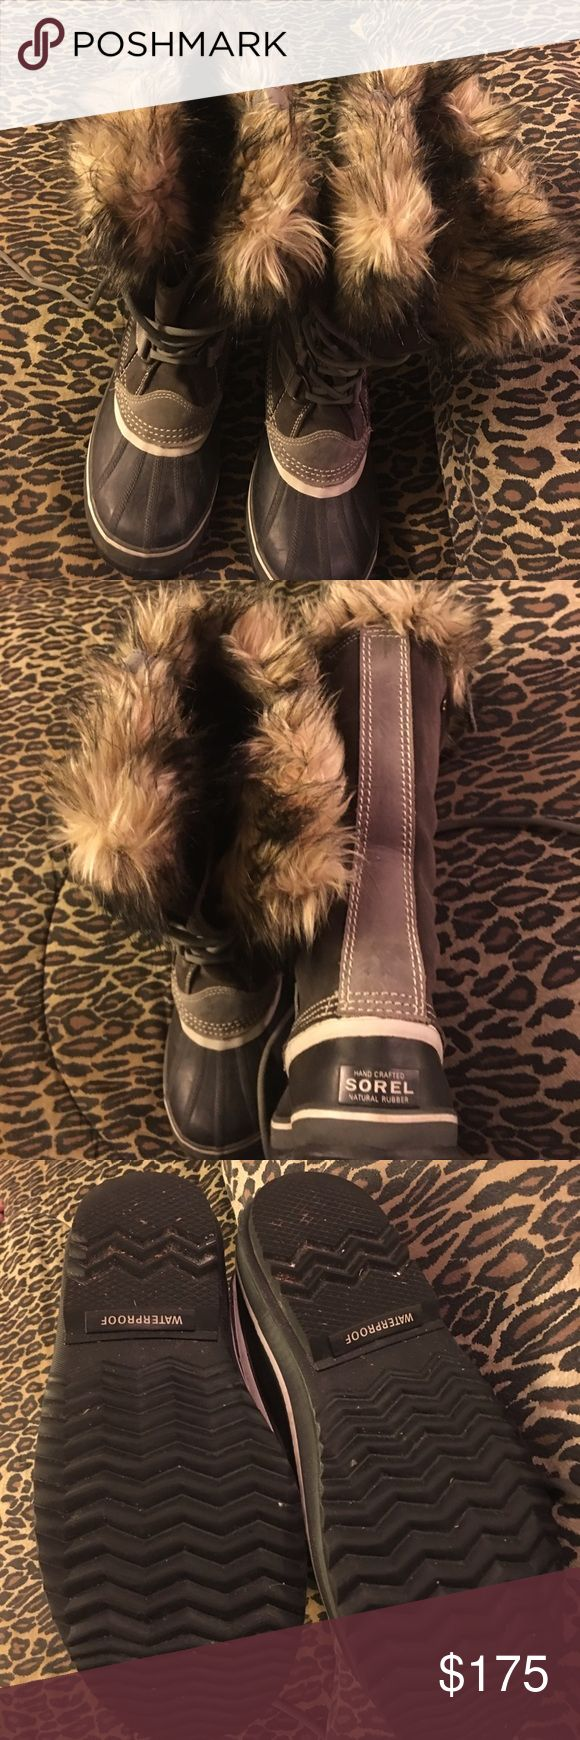 Hiking, cold weather Sorel boots Boot is ladies size 8, dark brown and grey in color with light fur liners. Cozy and comfy warm in extreme temps for sure. All 💦 Waterproof Sorel Shoes Winter & Rain Boots